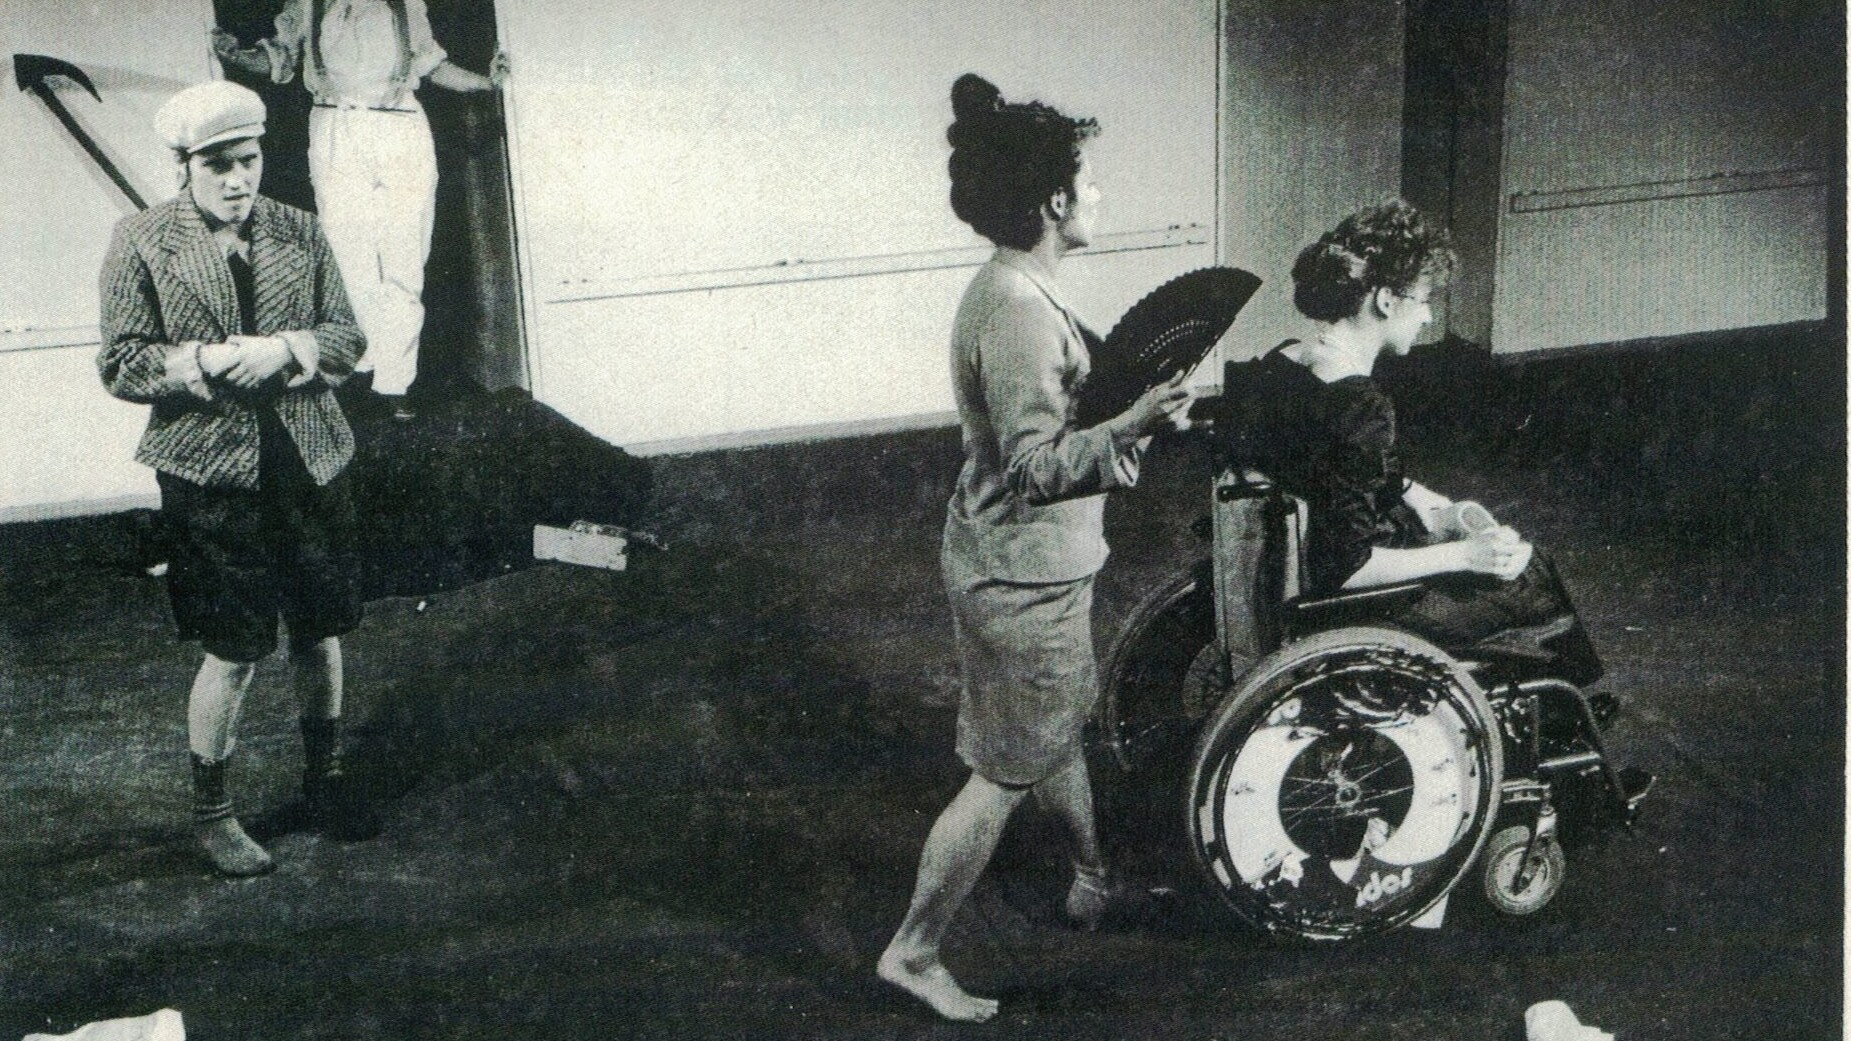 Scene photo of a performance: Four people on a stage. One in a wheelchair.